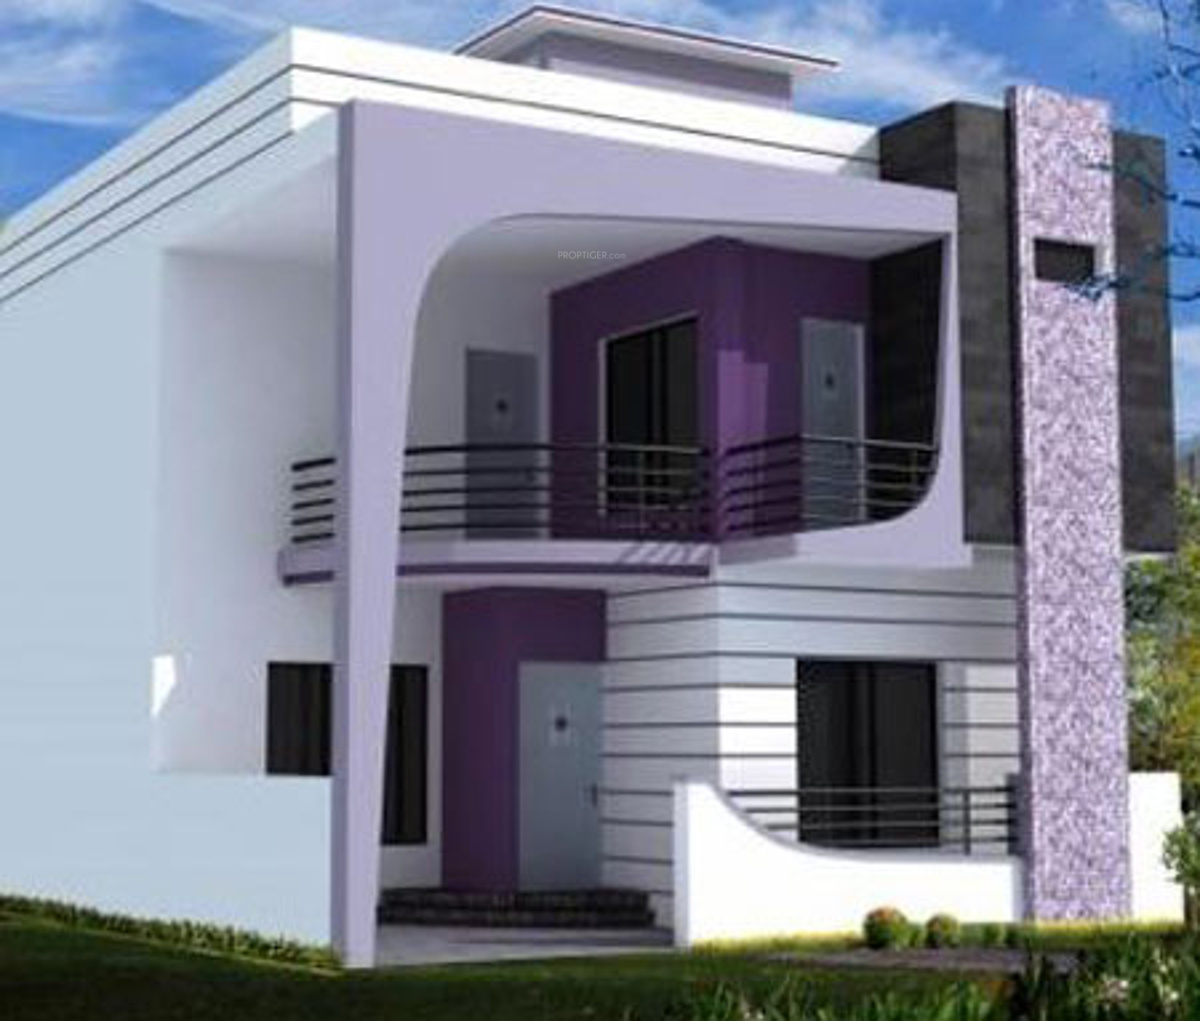 Vrr enclave in dammaiguda hyderabad price location map for Duplex house elevation models